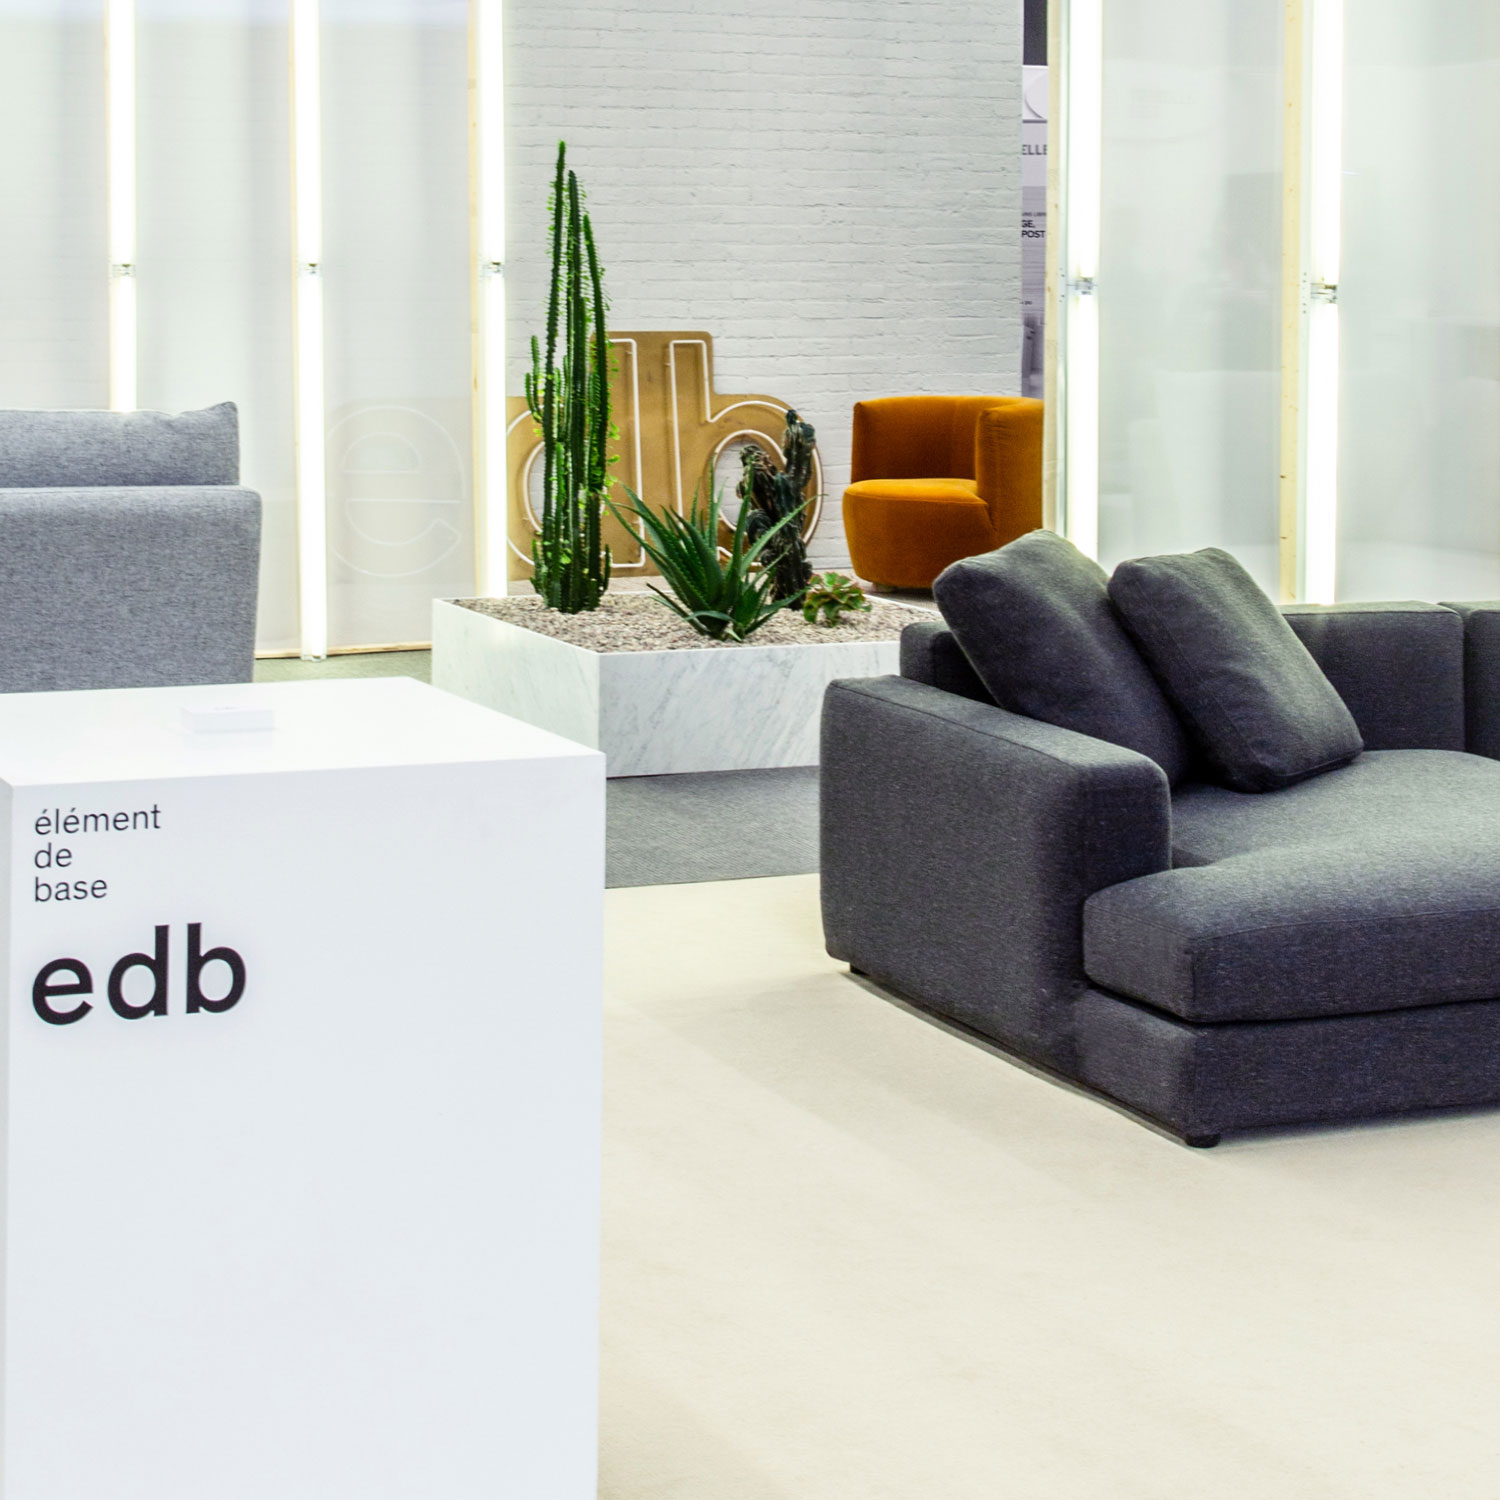 edb in spaces : SNH